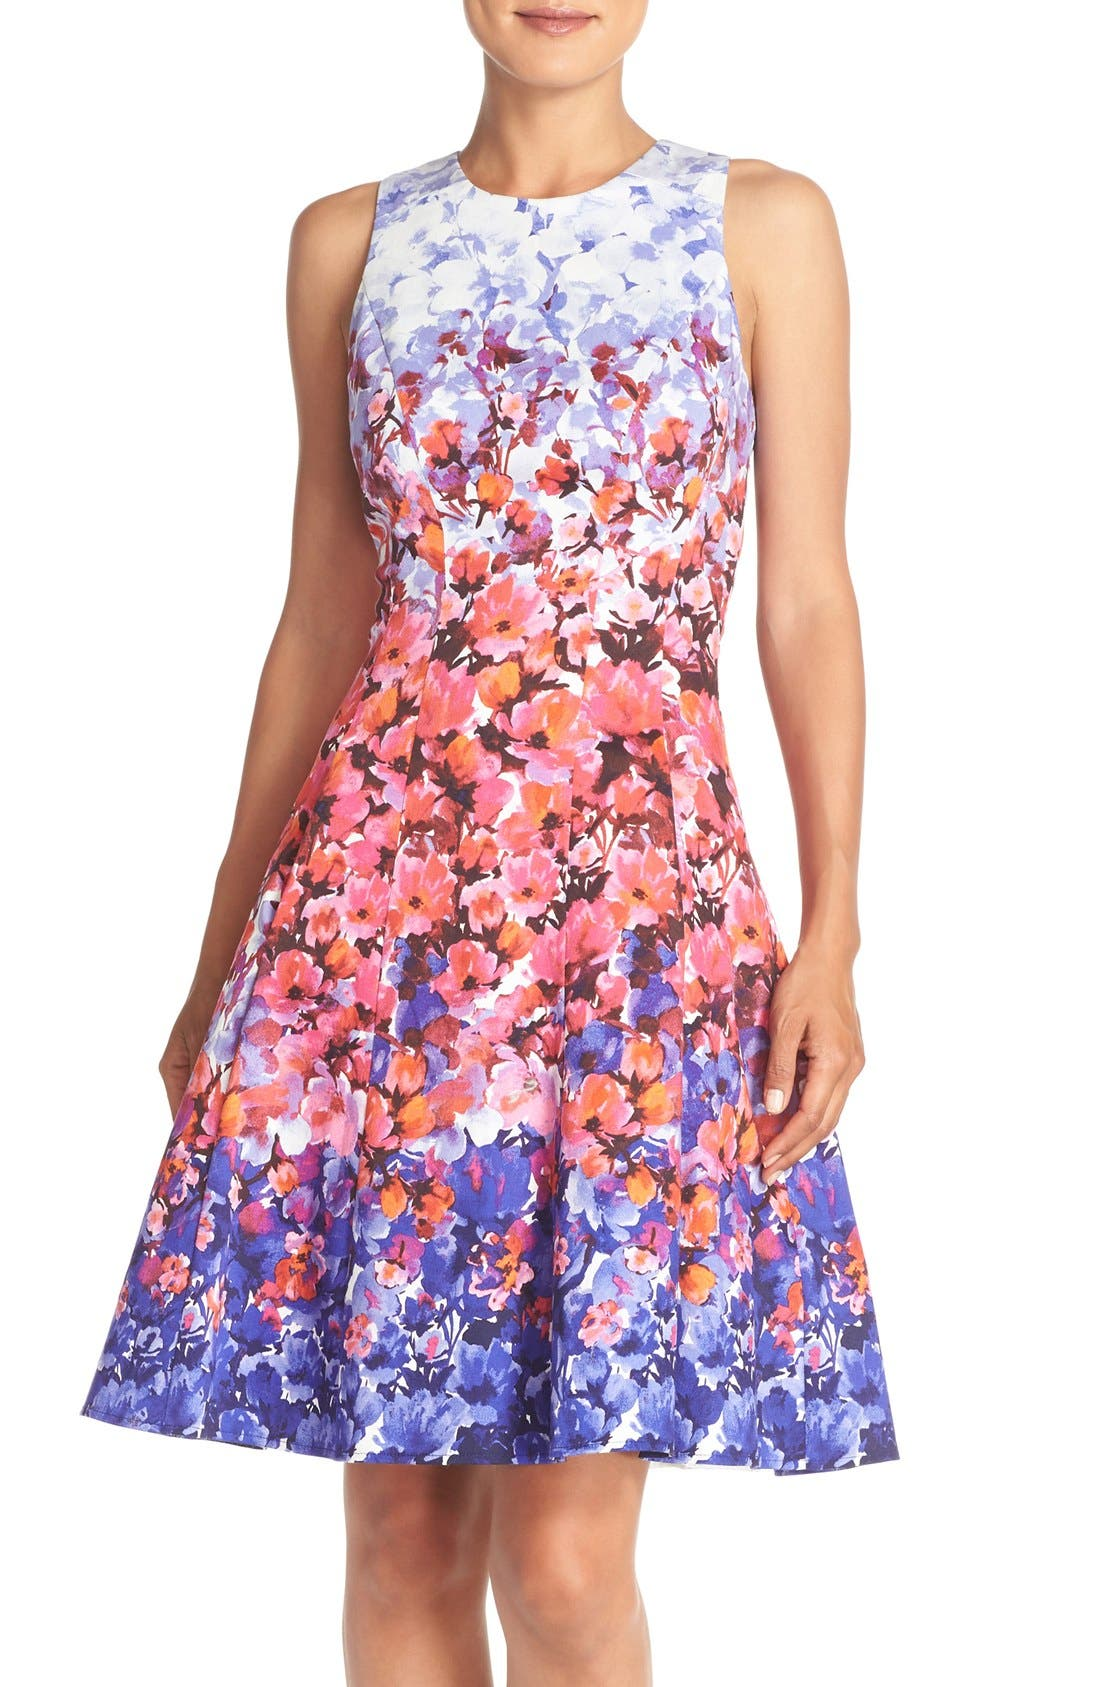 Alternate Image 1 Selected - Maggy London Floral Print Sateen Fit & Flare Dress (Regular & Petite)